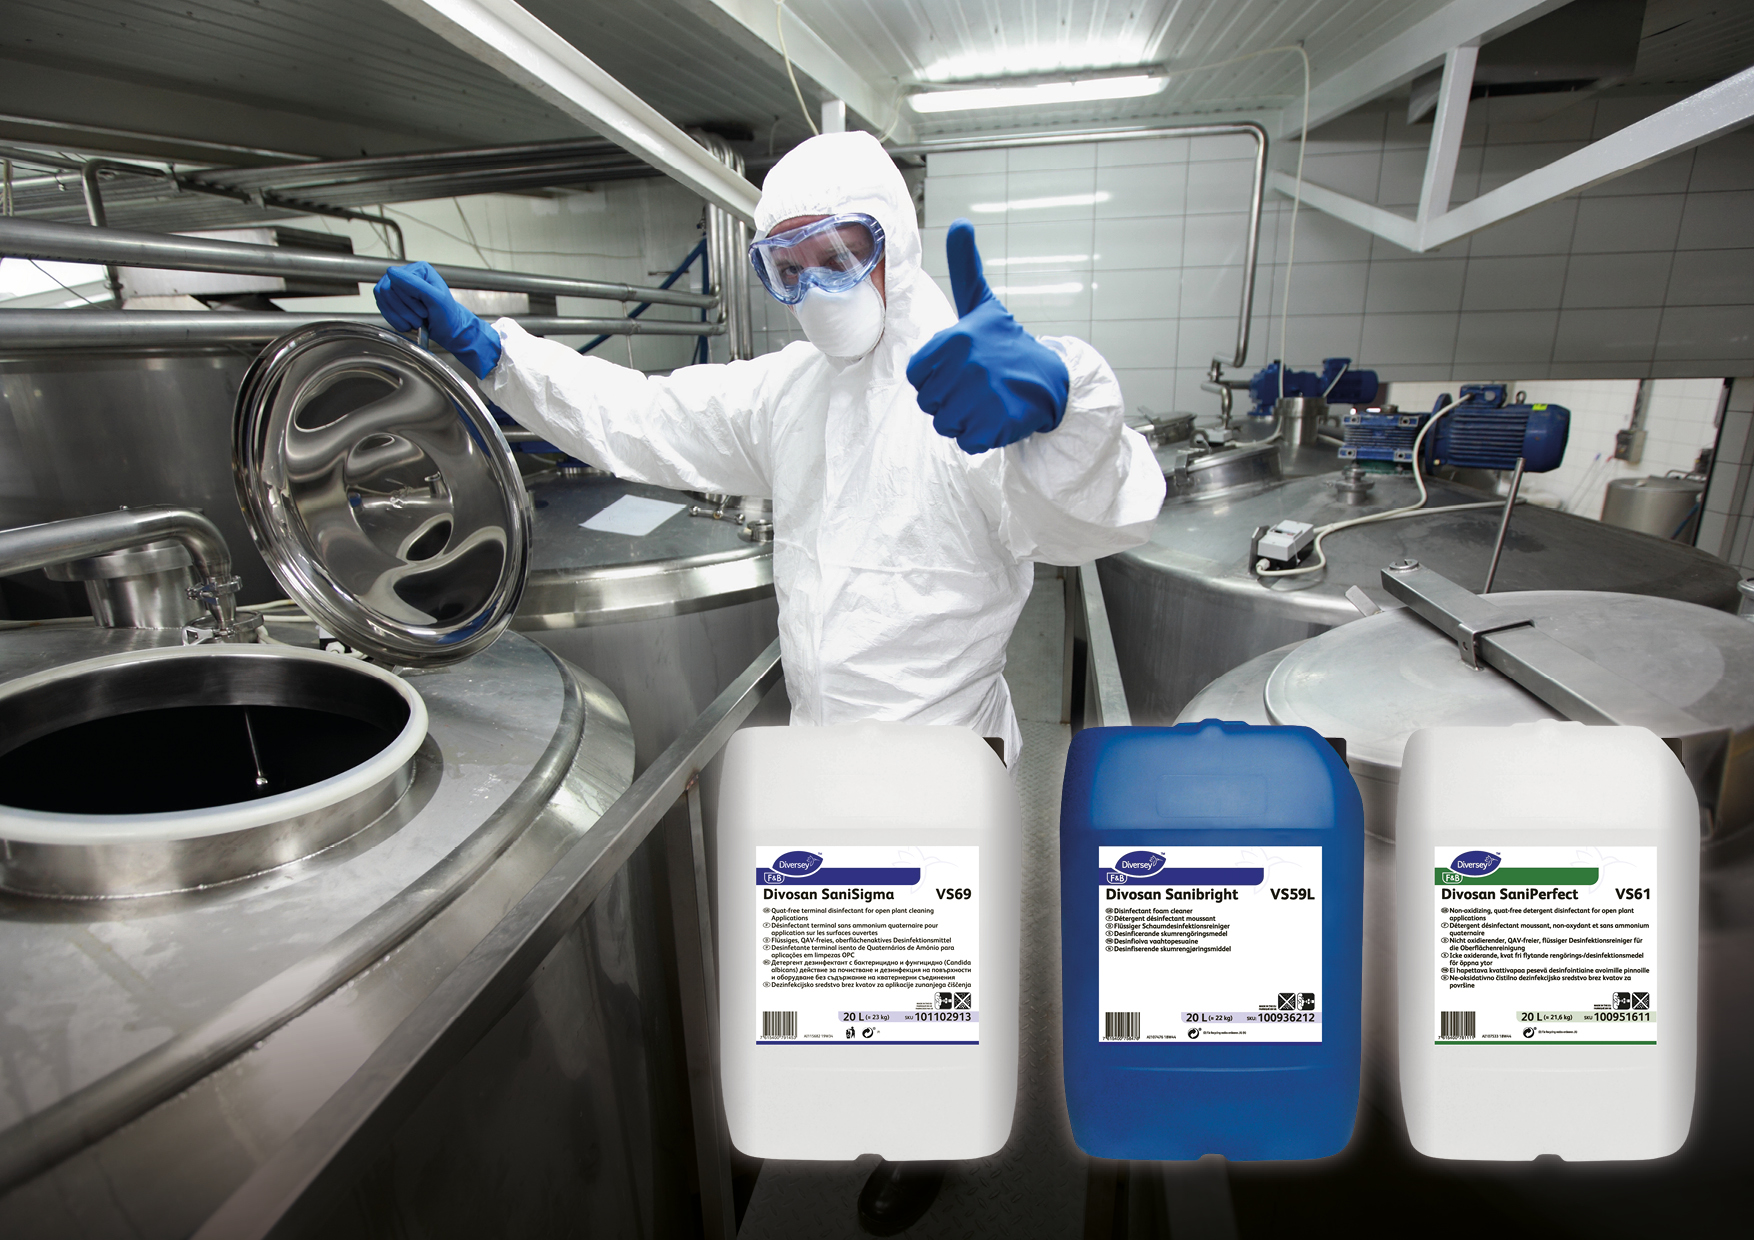 New Food-Safe Disinfectant Range Provides Quat-Free, Non-Tainting, 	Broad Spectrum Biocidal Convenience